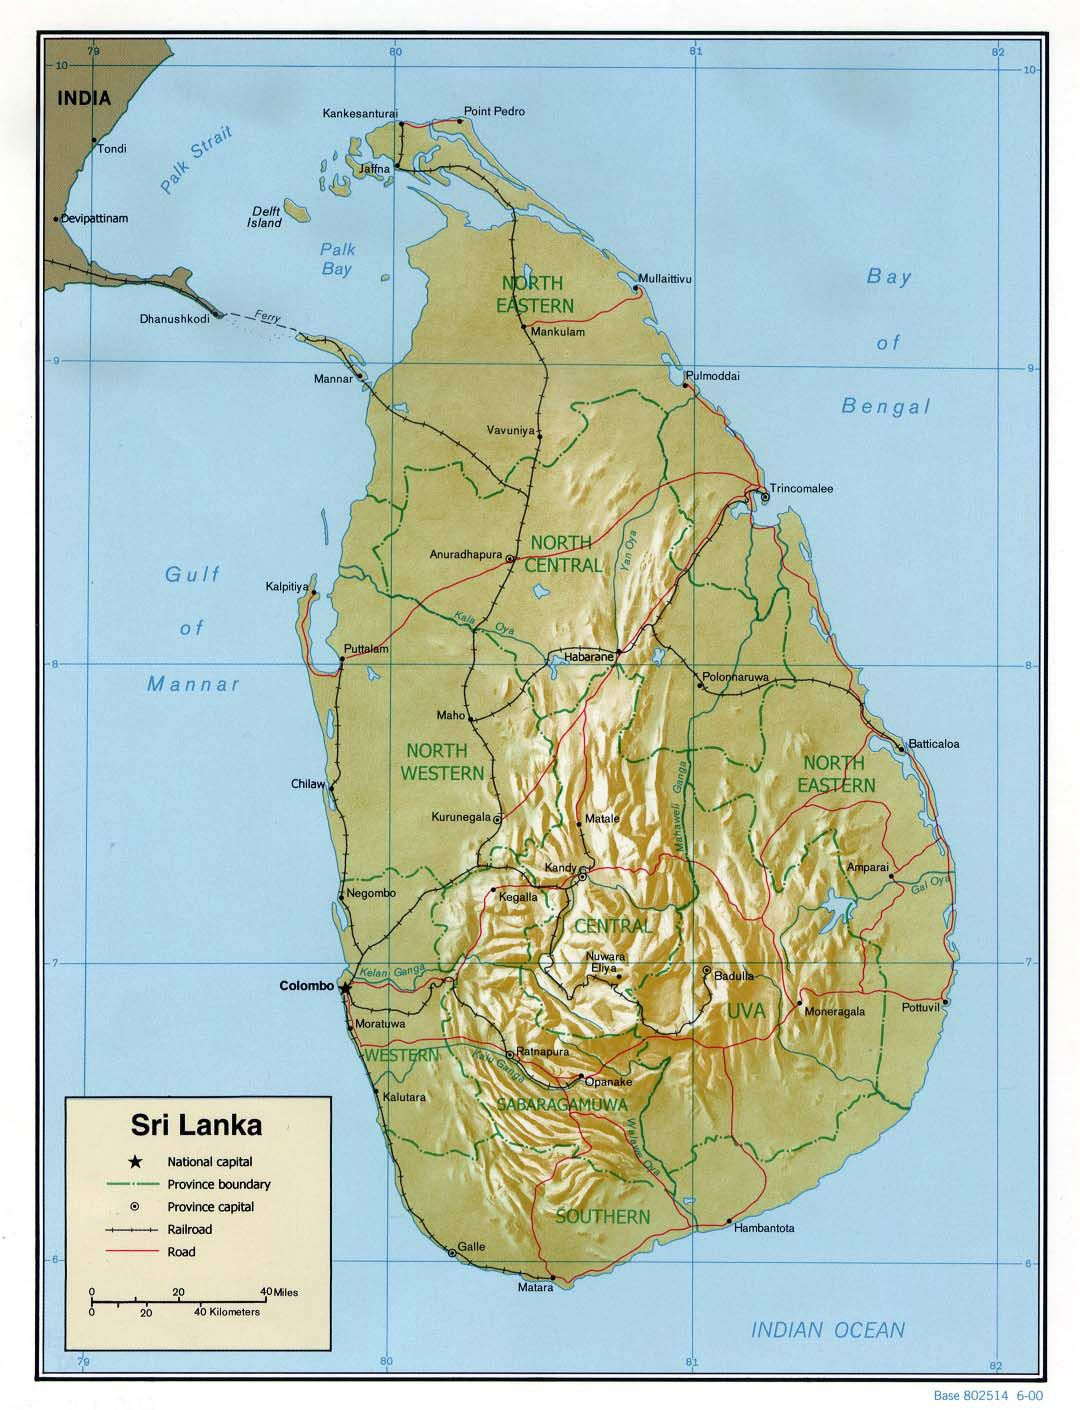 Detailed political and administrative map of Sri Lanka with relief, roads, railroads and major cities - 2000